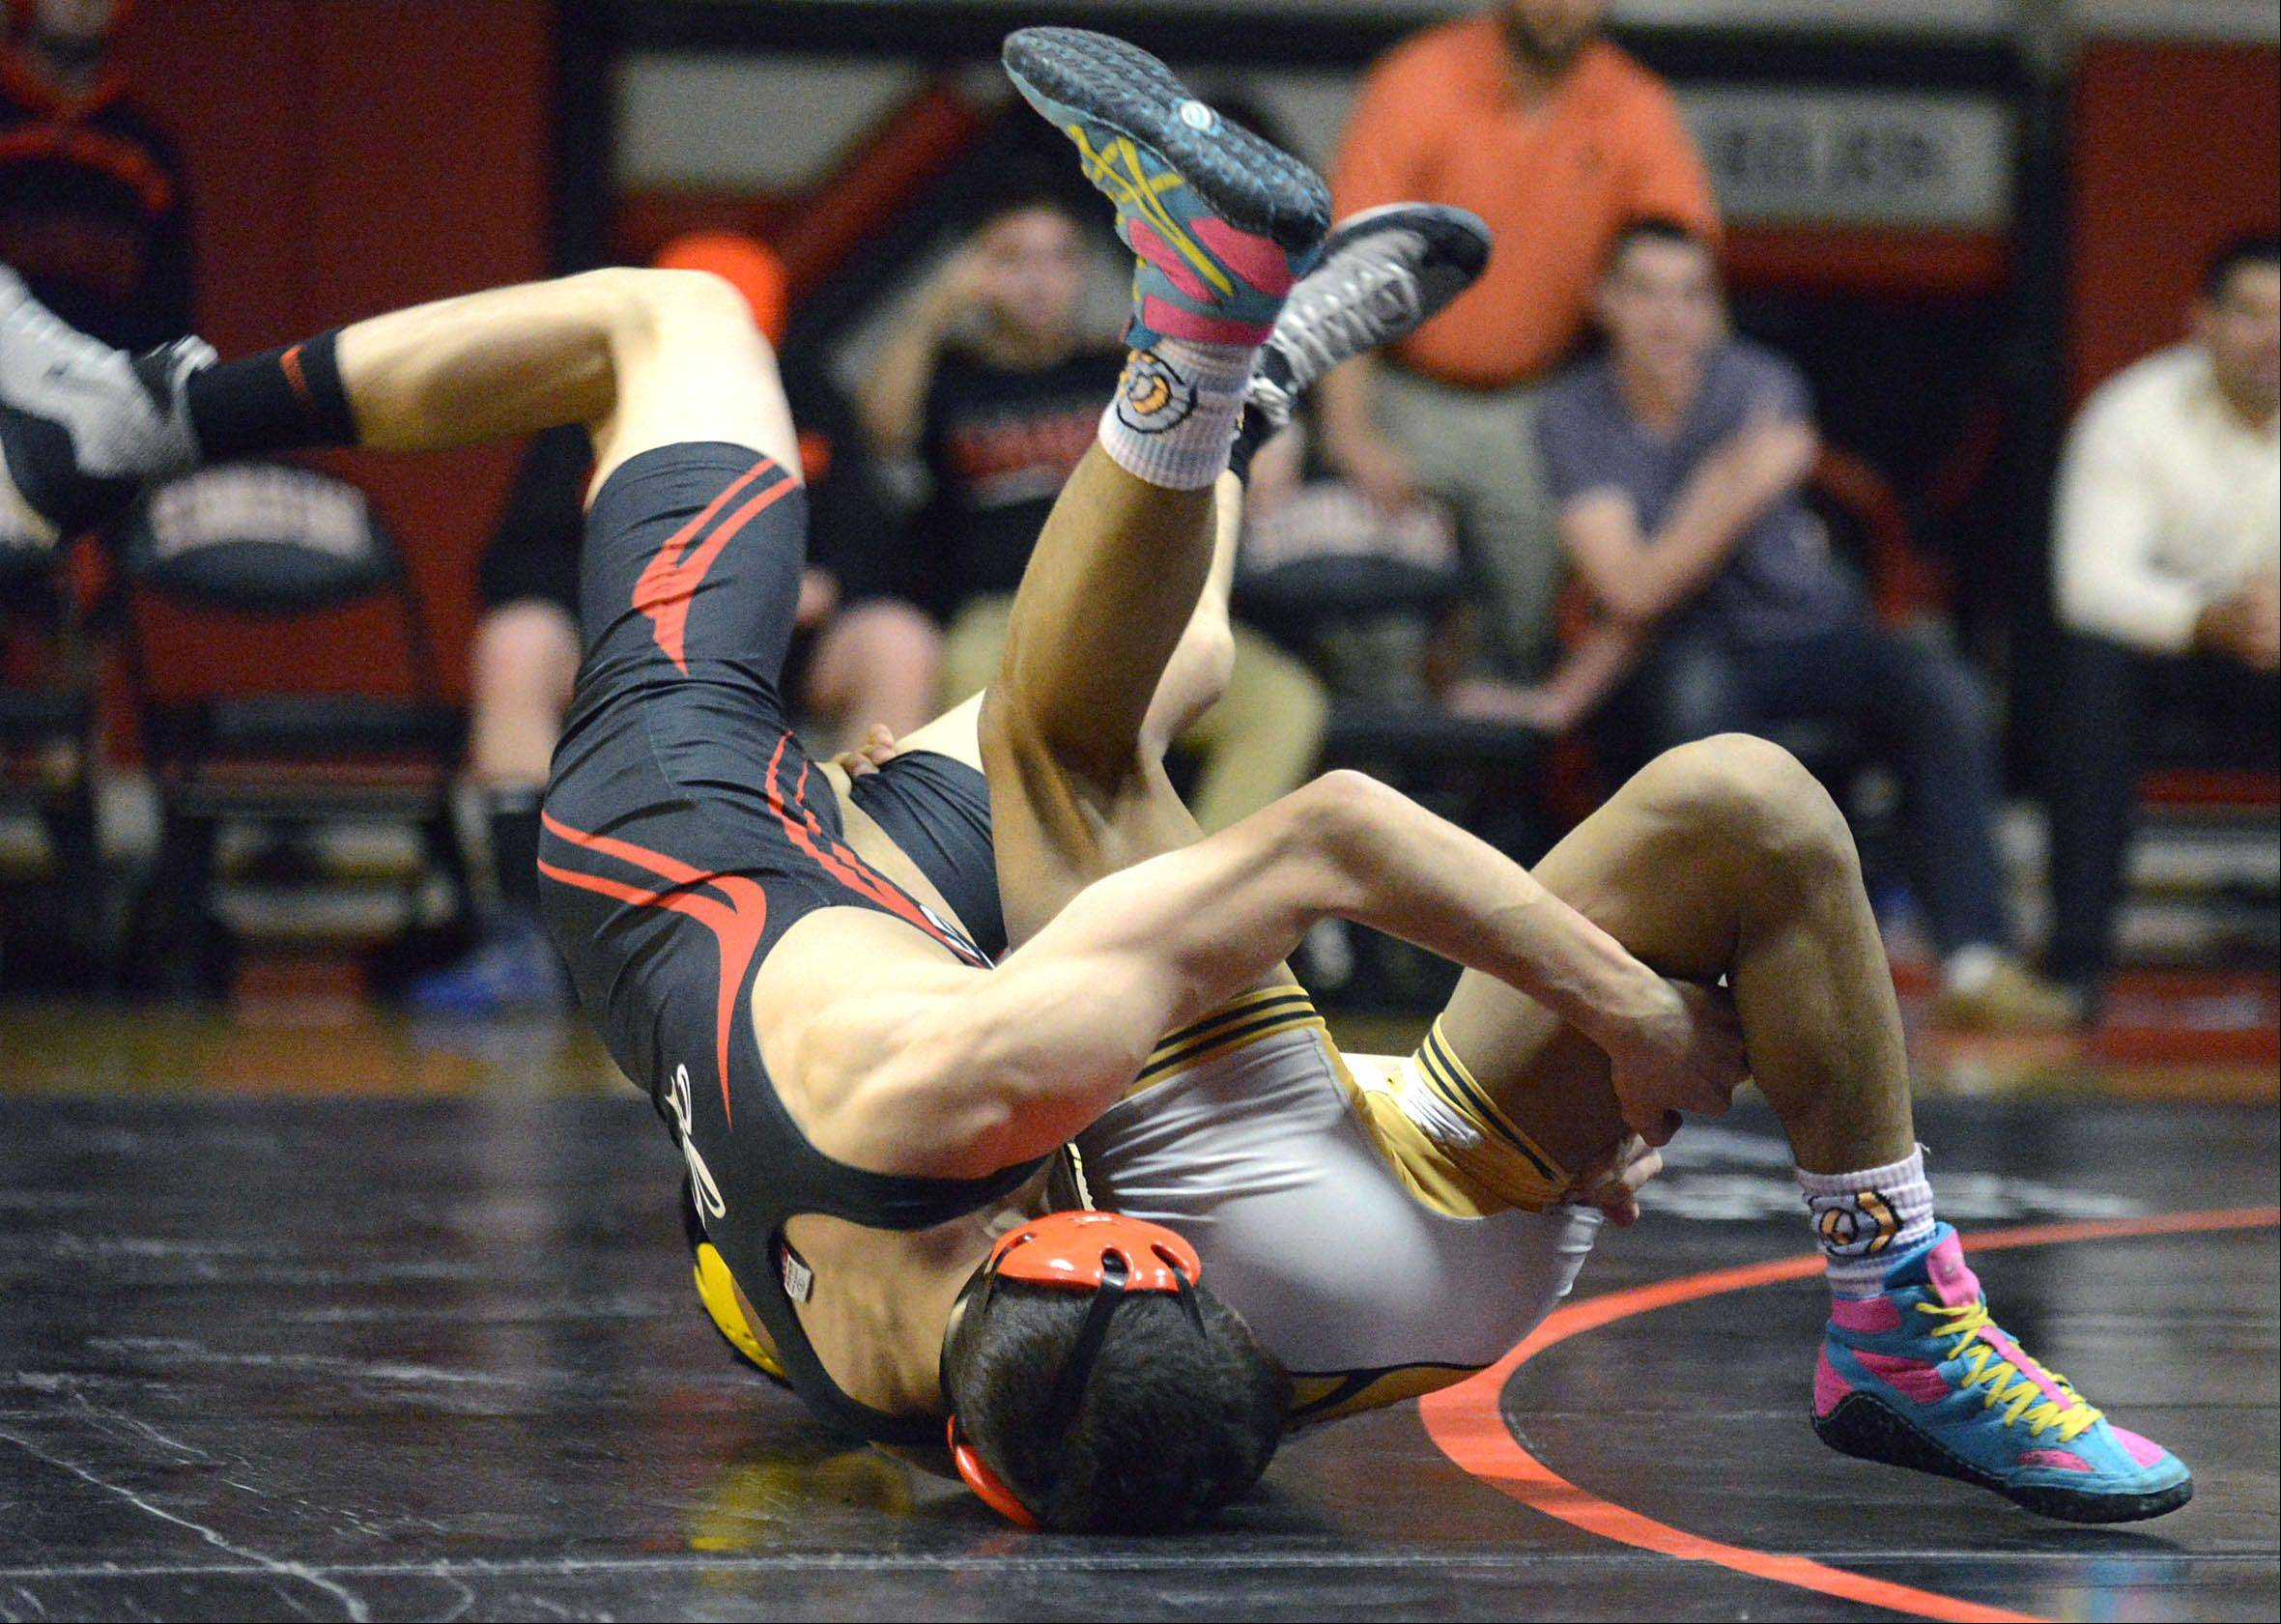 St. Charles East's Anthony Rubino flips Metea Valley's Axl Ariza during the 113 pound match on Thursday, December 19. Rubino took the win.